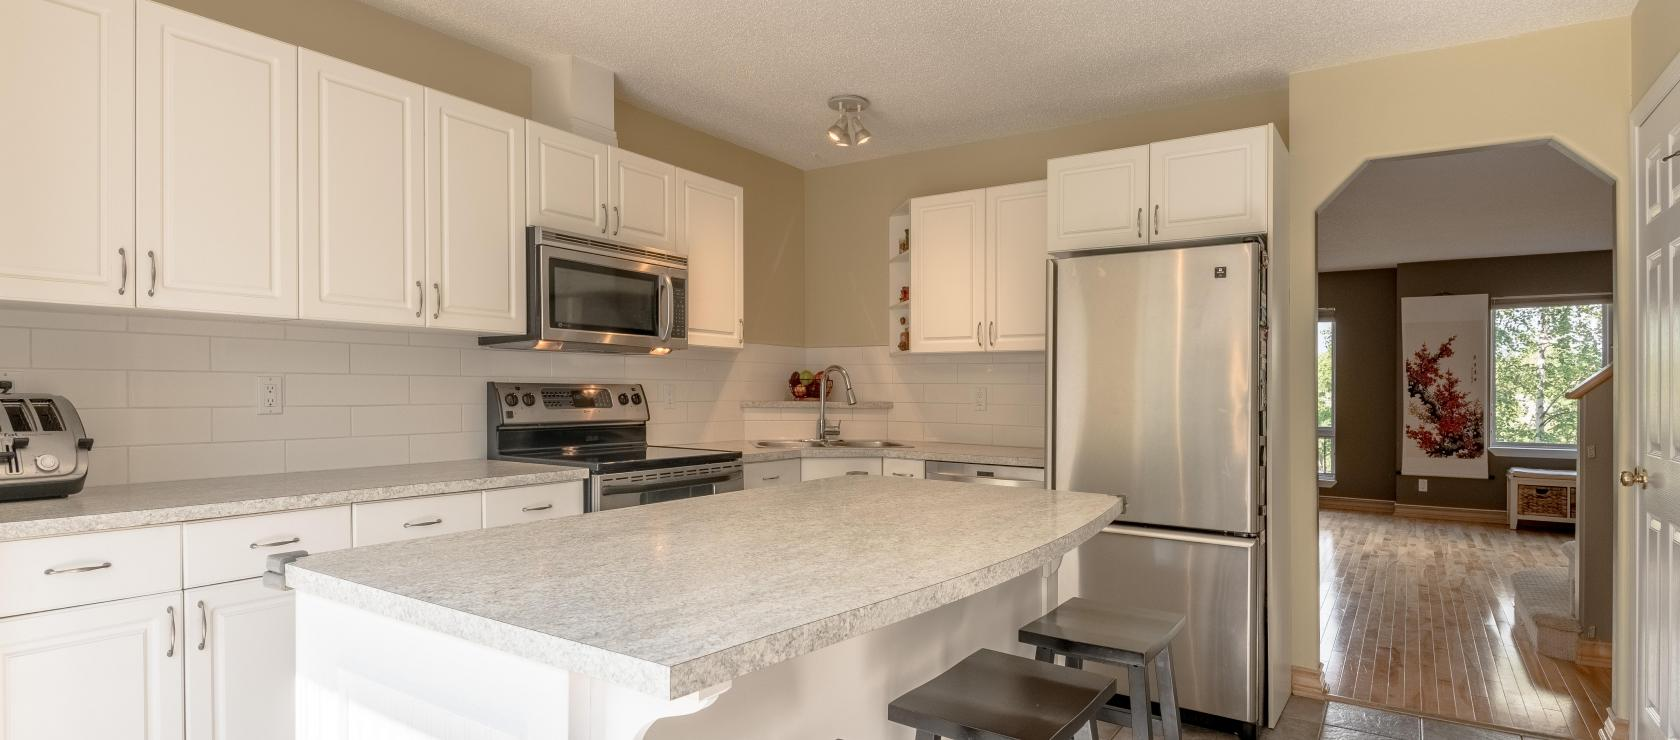 23 - 46 Con Road, Downtown, Yellowknife 2